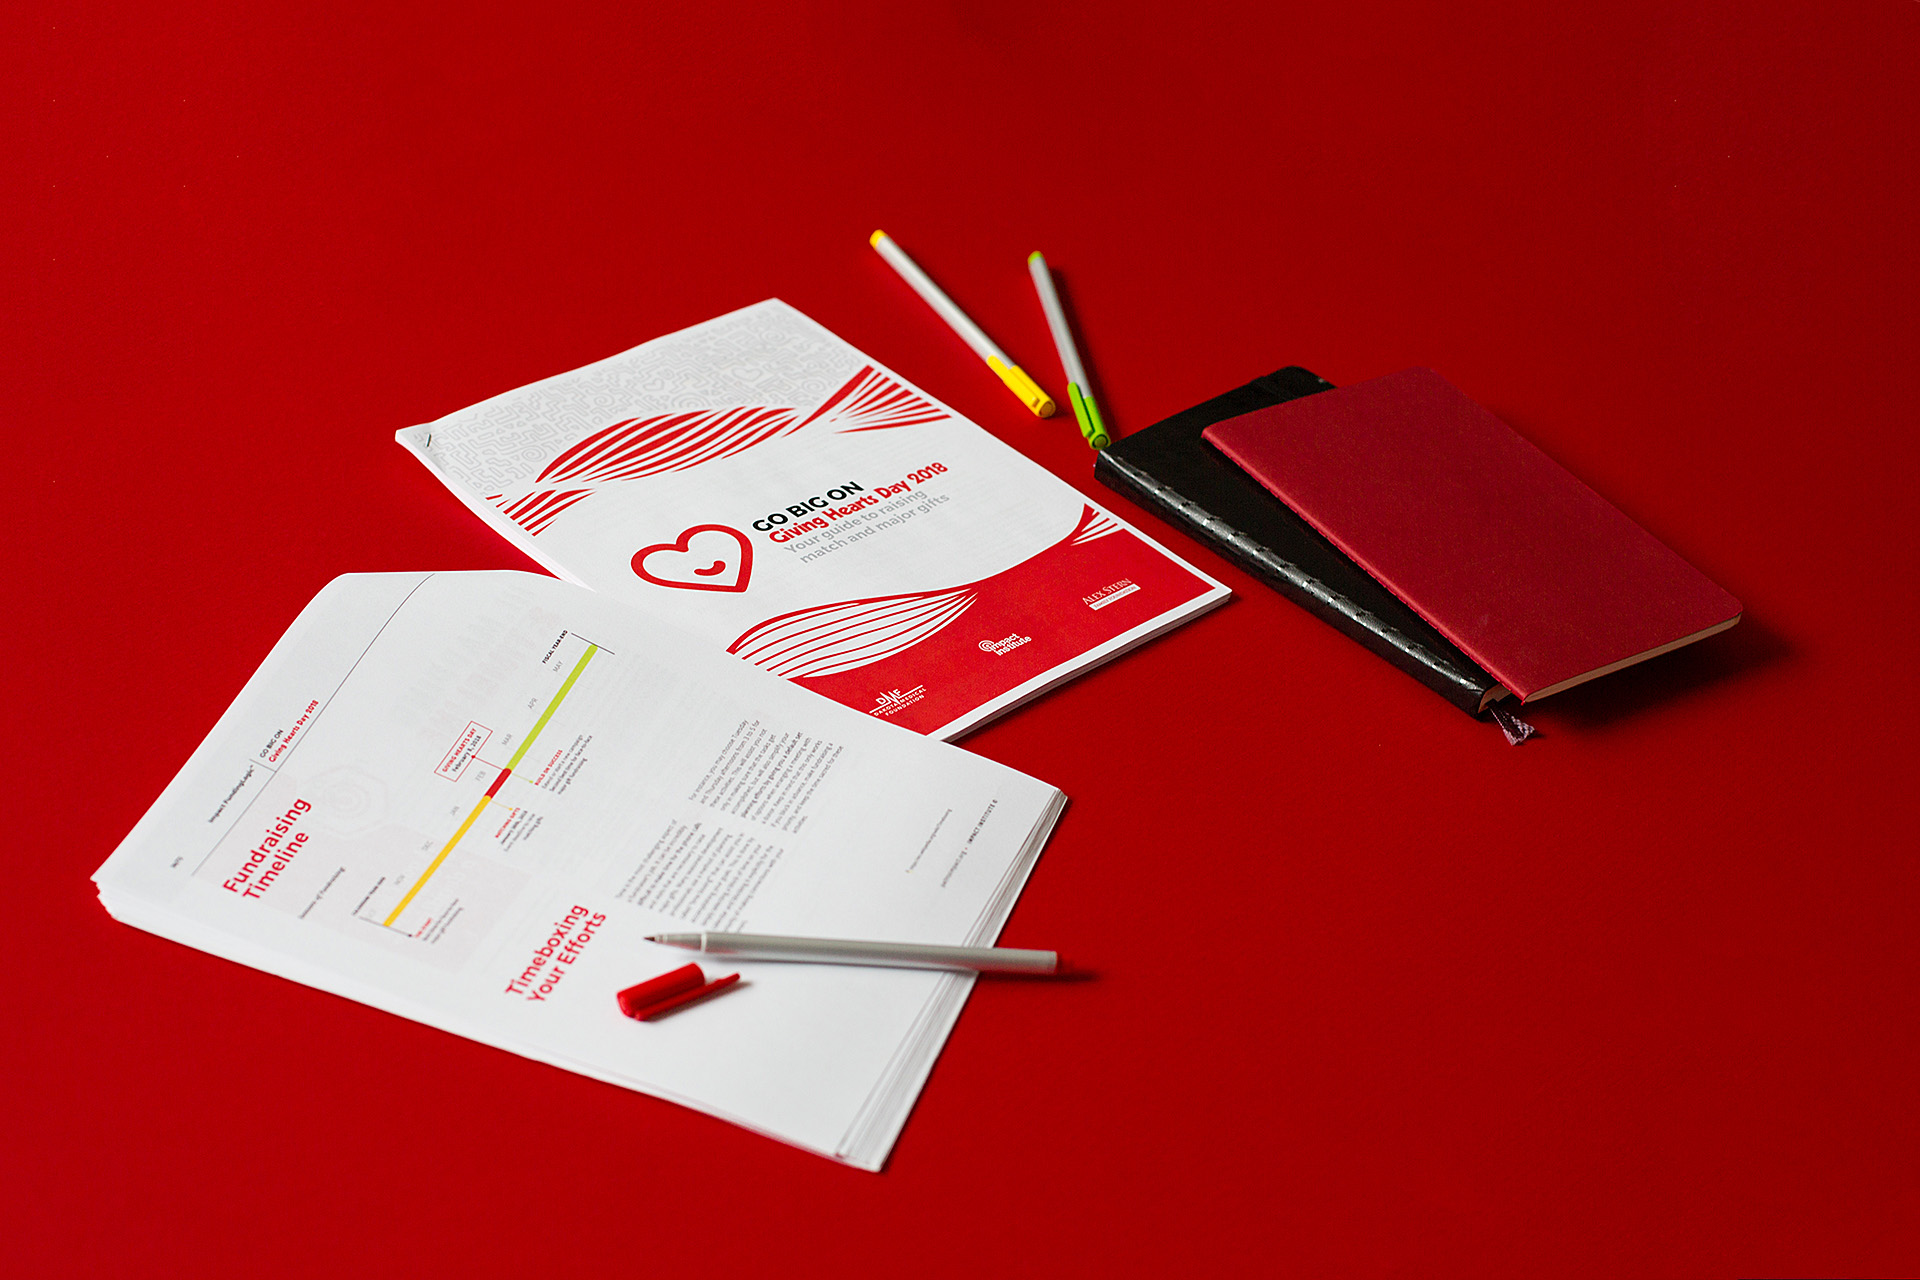 Two printed booklets laying on red background next to a black journal, red journal, and colored pens